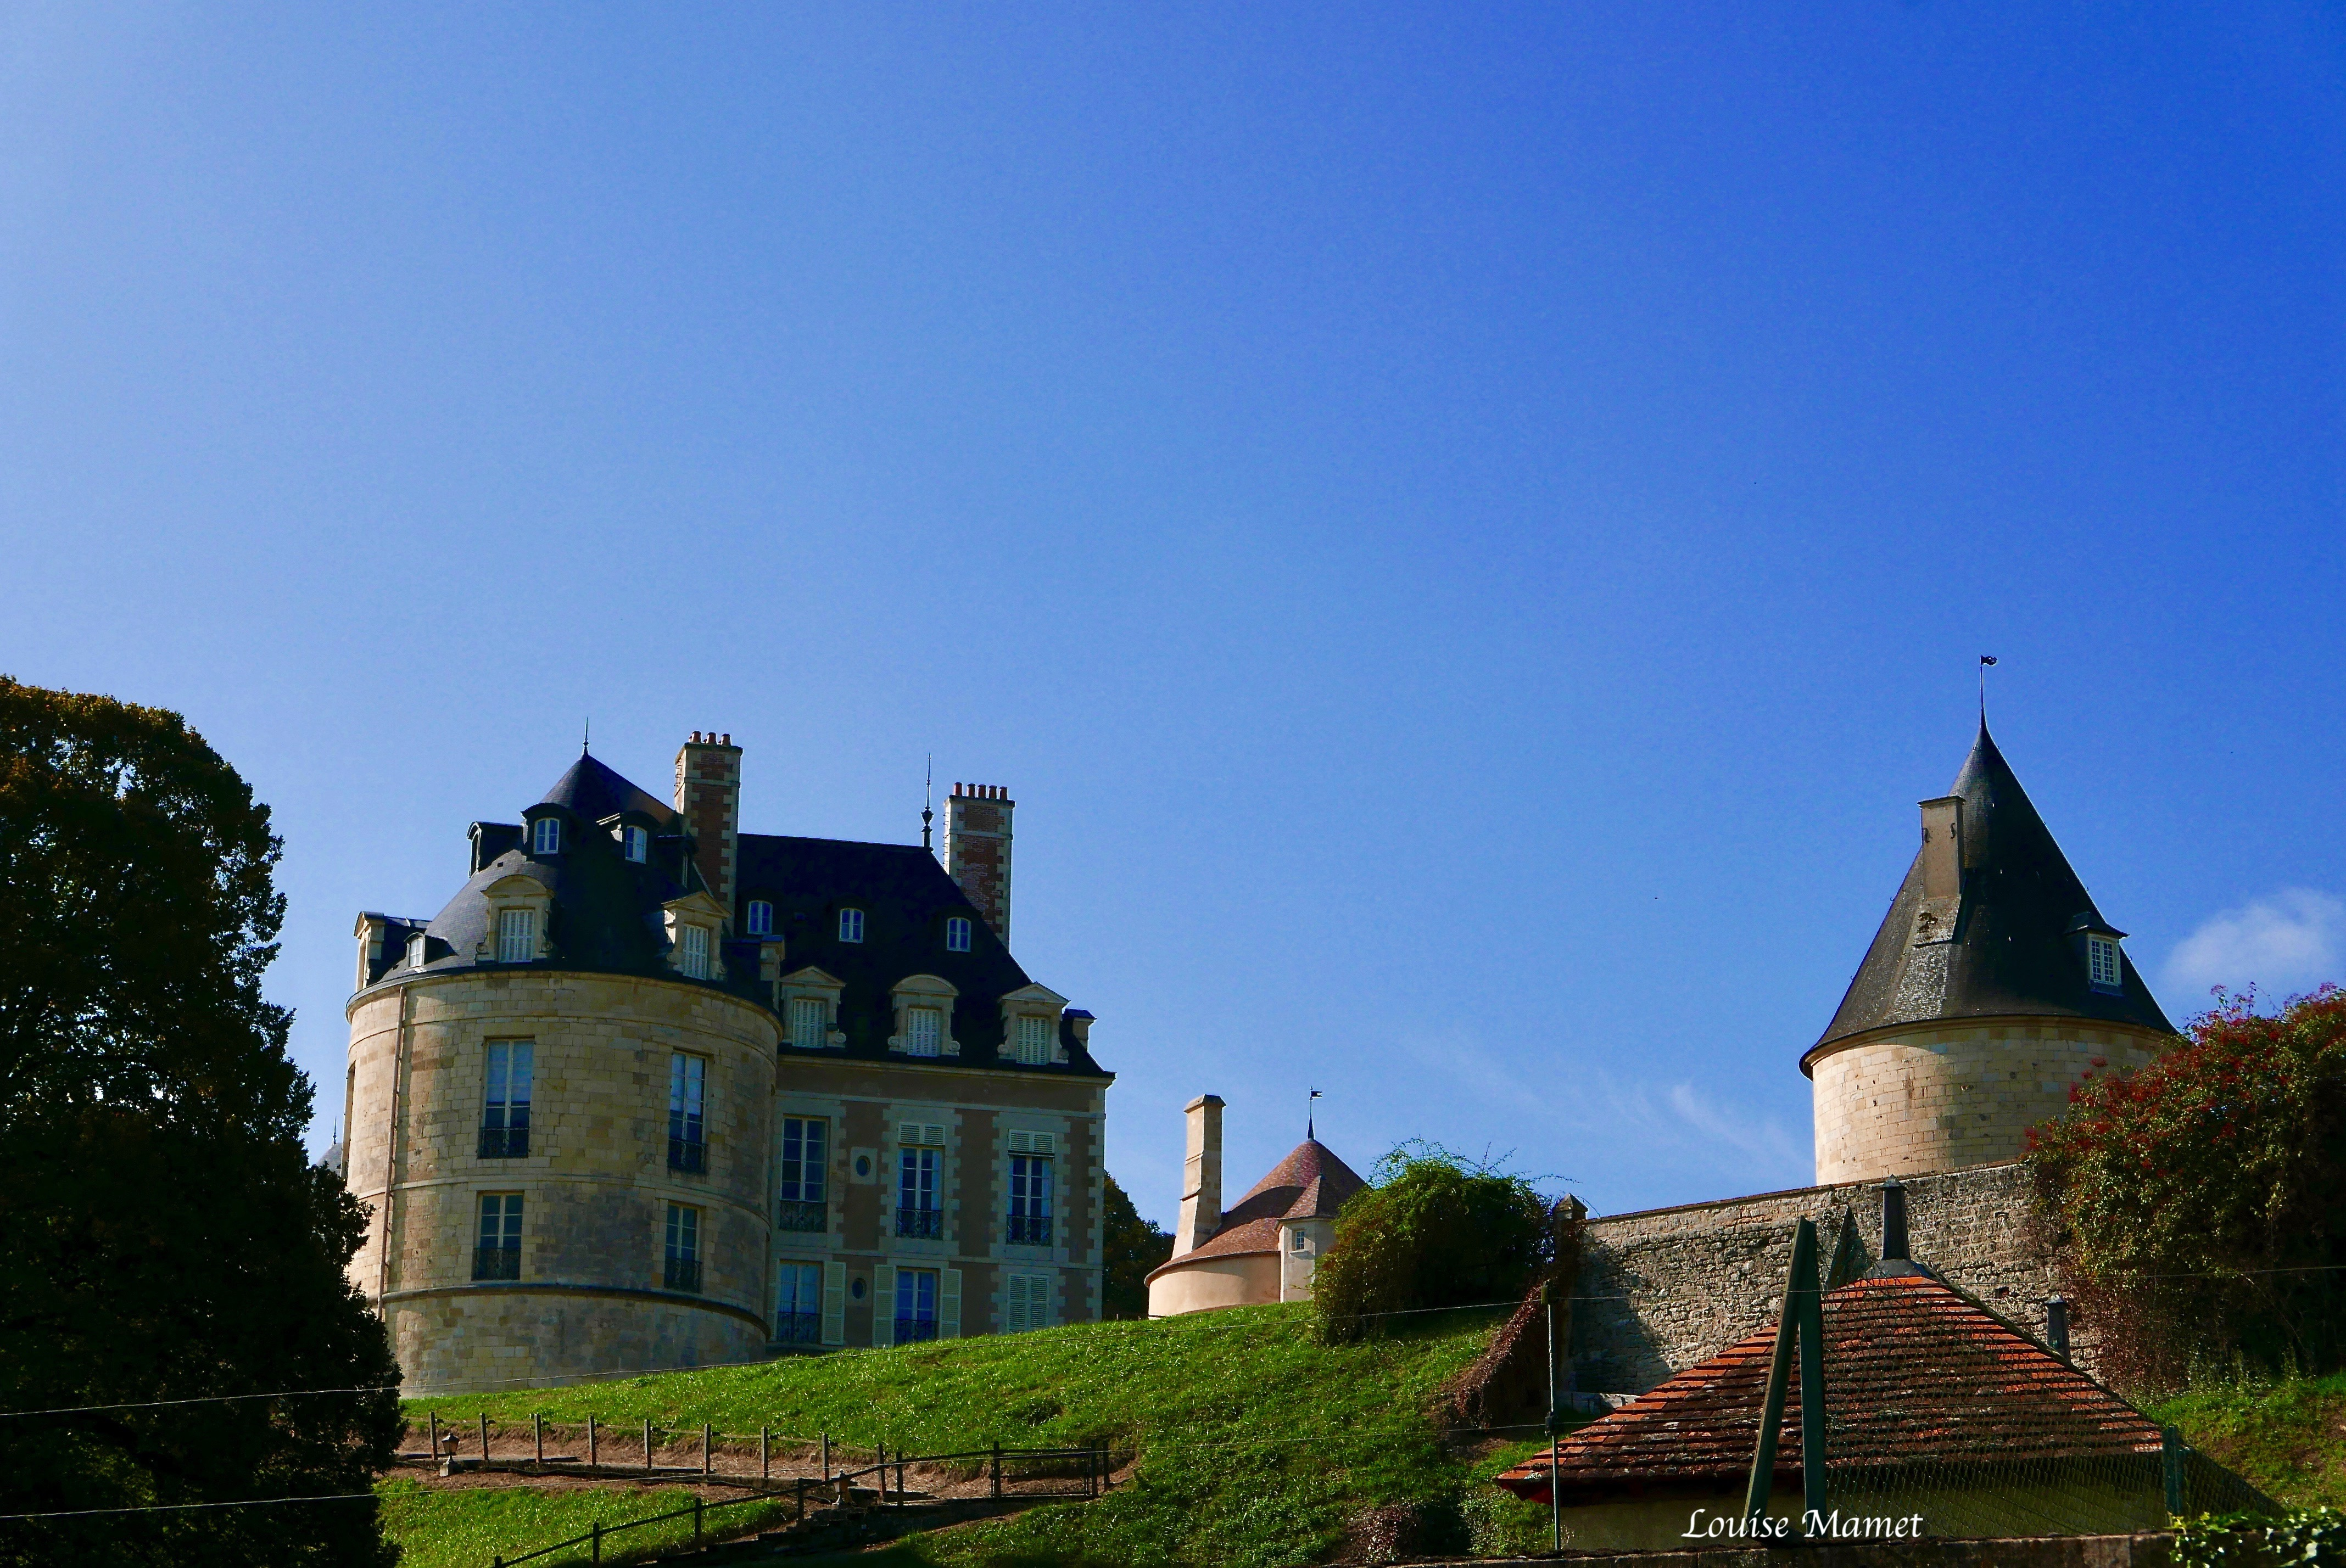 Apremont Sur Allier Chateau Apremont Sur Allier Drops Of Everything